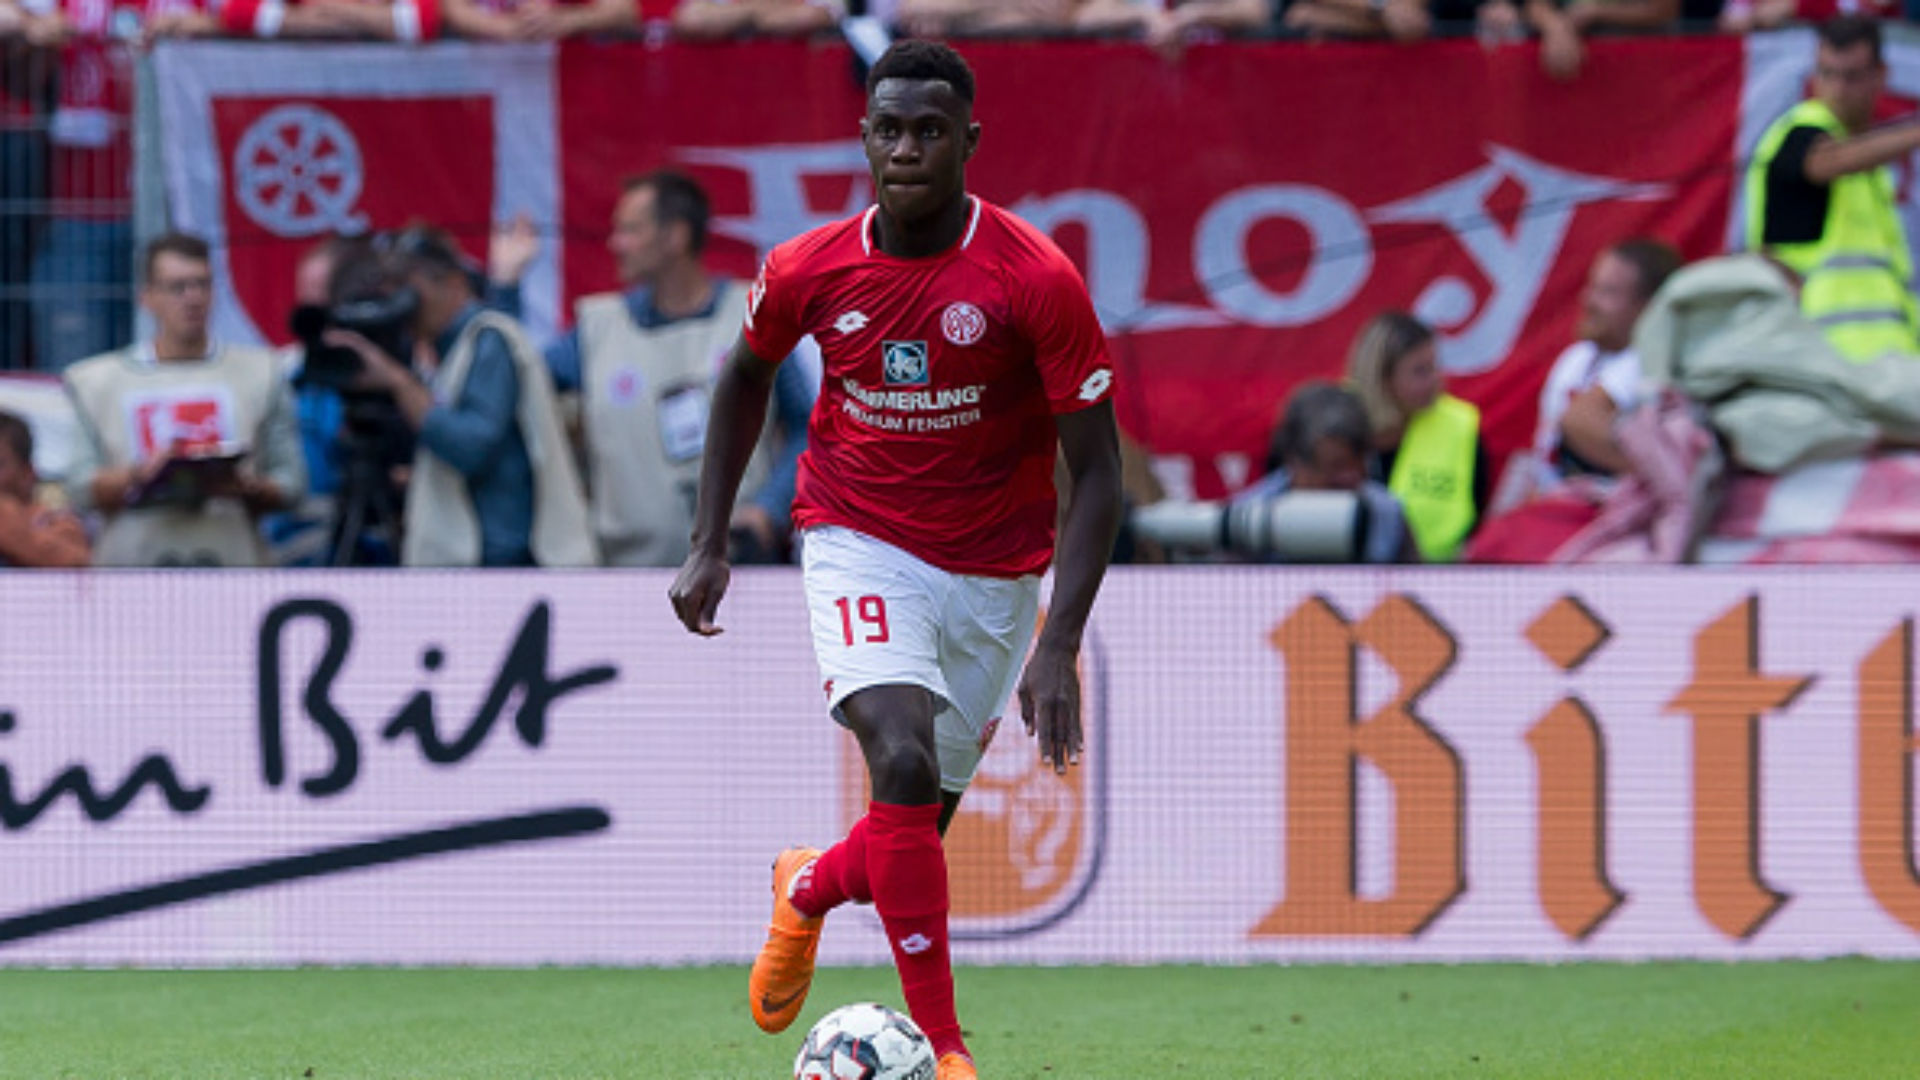 Niakhate and Kunde strike in 2-0 victory for Mainz at Eintracht Frankfurt